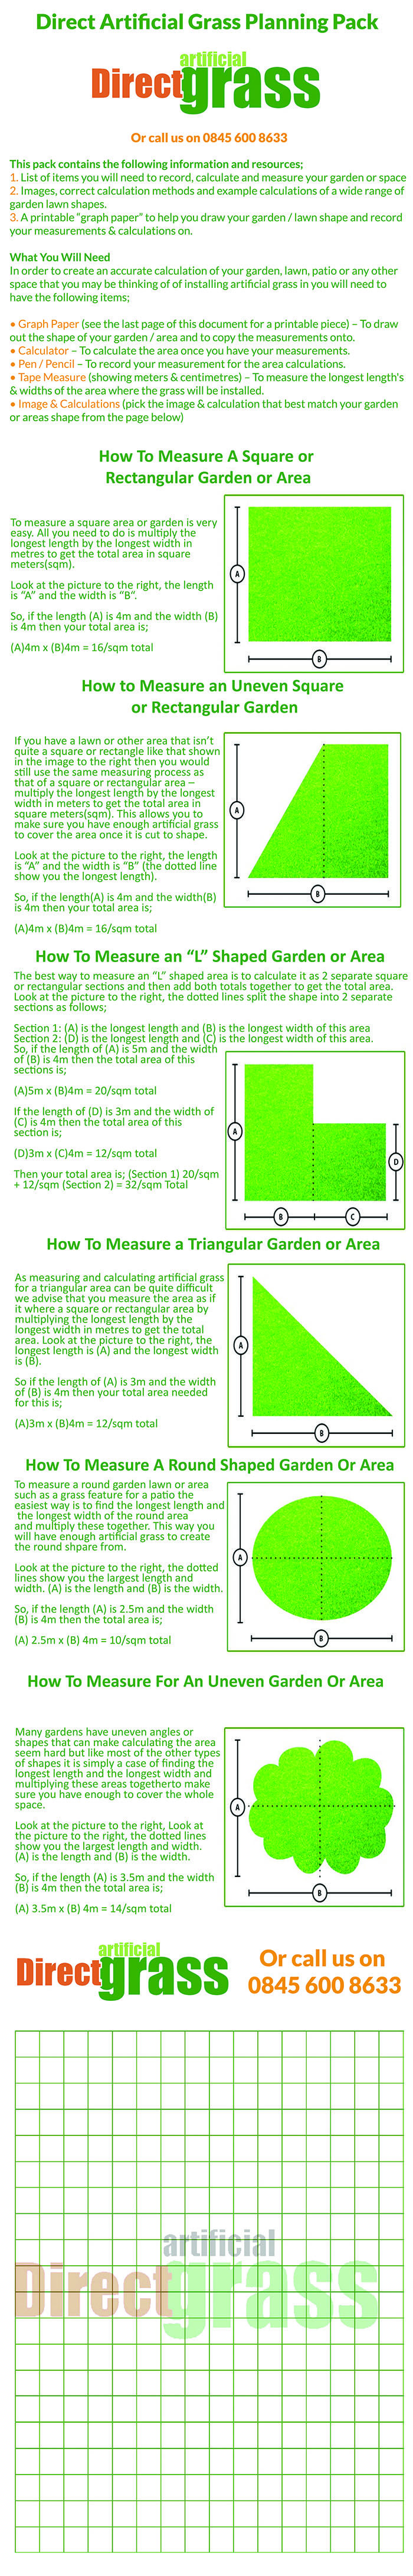 Complete guide to how to measure for an area you are wanting to install artificial grass. Includes different shaped areas and how to measure these with minimal wastage.